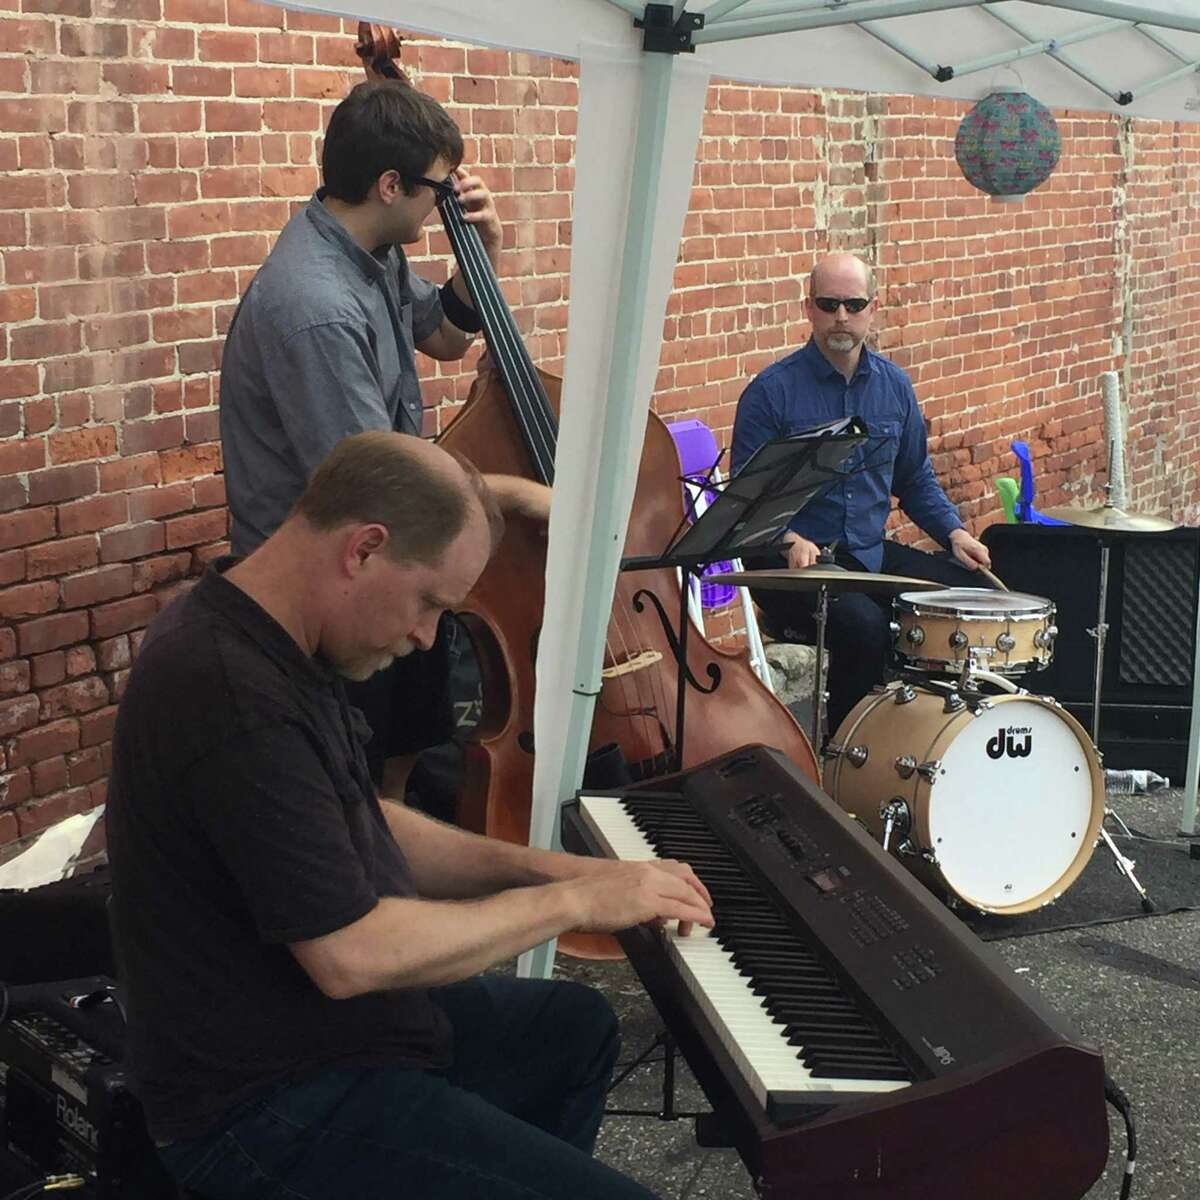 Make Music Day 2019 returns to Torrington and area communities the weekend of June 21. Participants and facilitators to run events and programs are needed. Above, a band performs during the 2018 event.